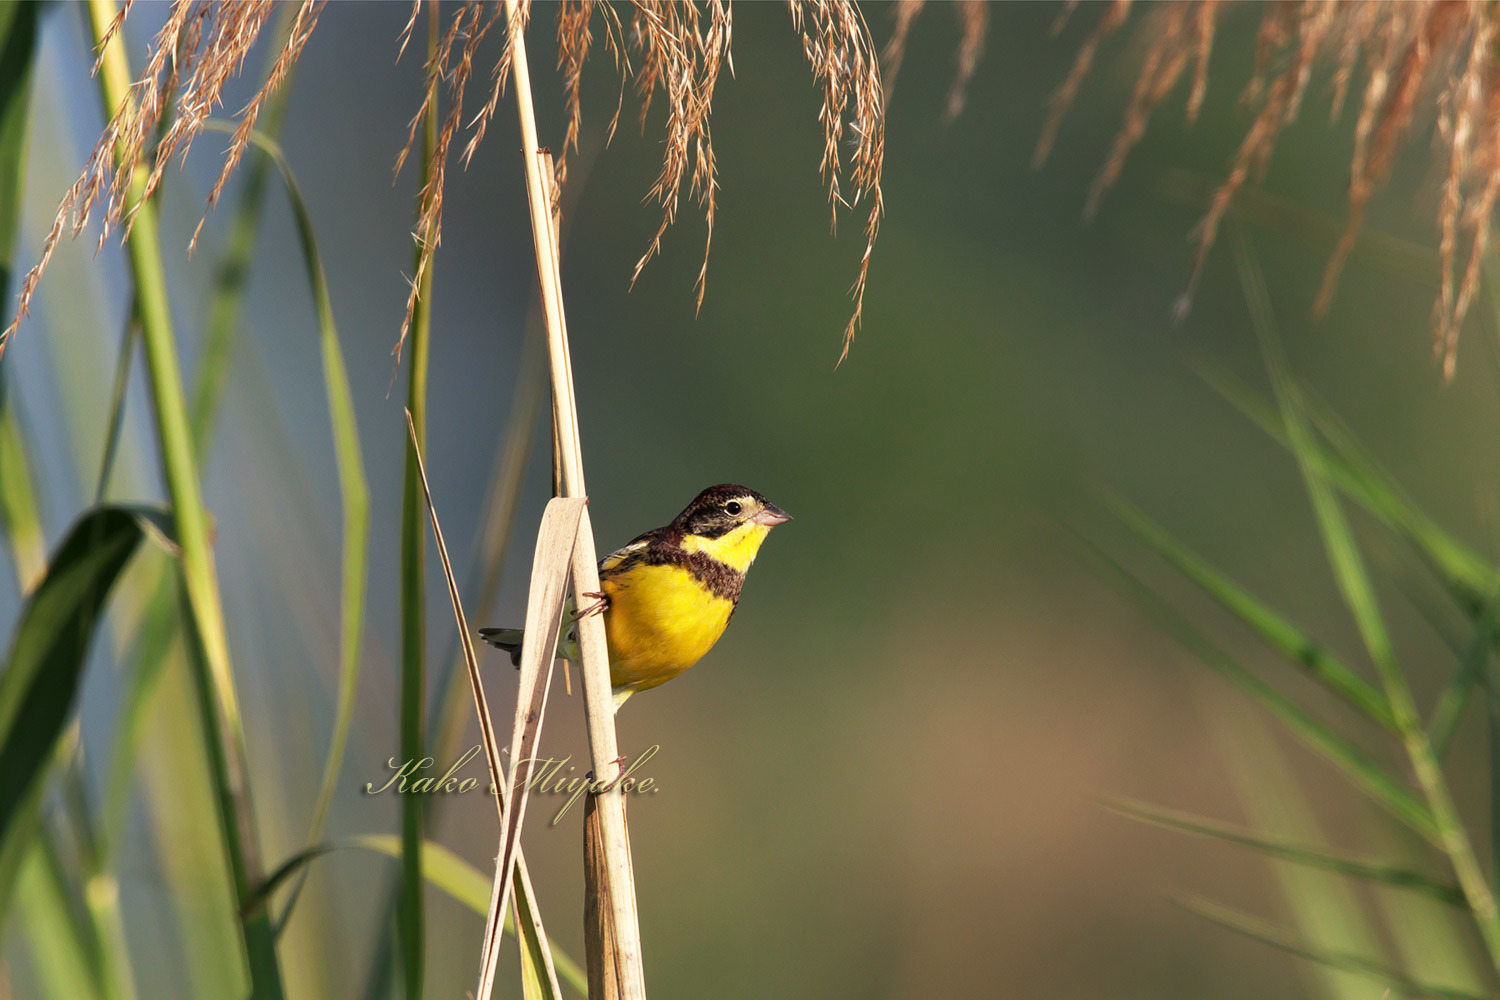 シマアオジ Yellow-breasteed Bunting _d0013455_19325057.jpg